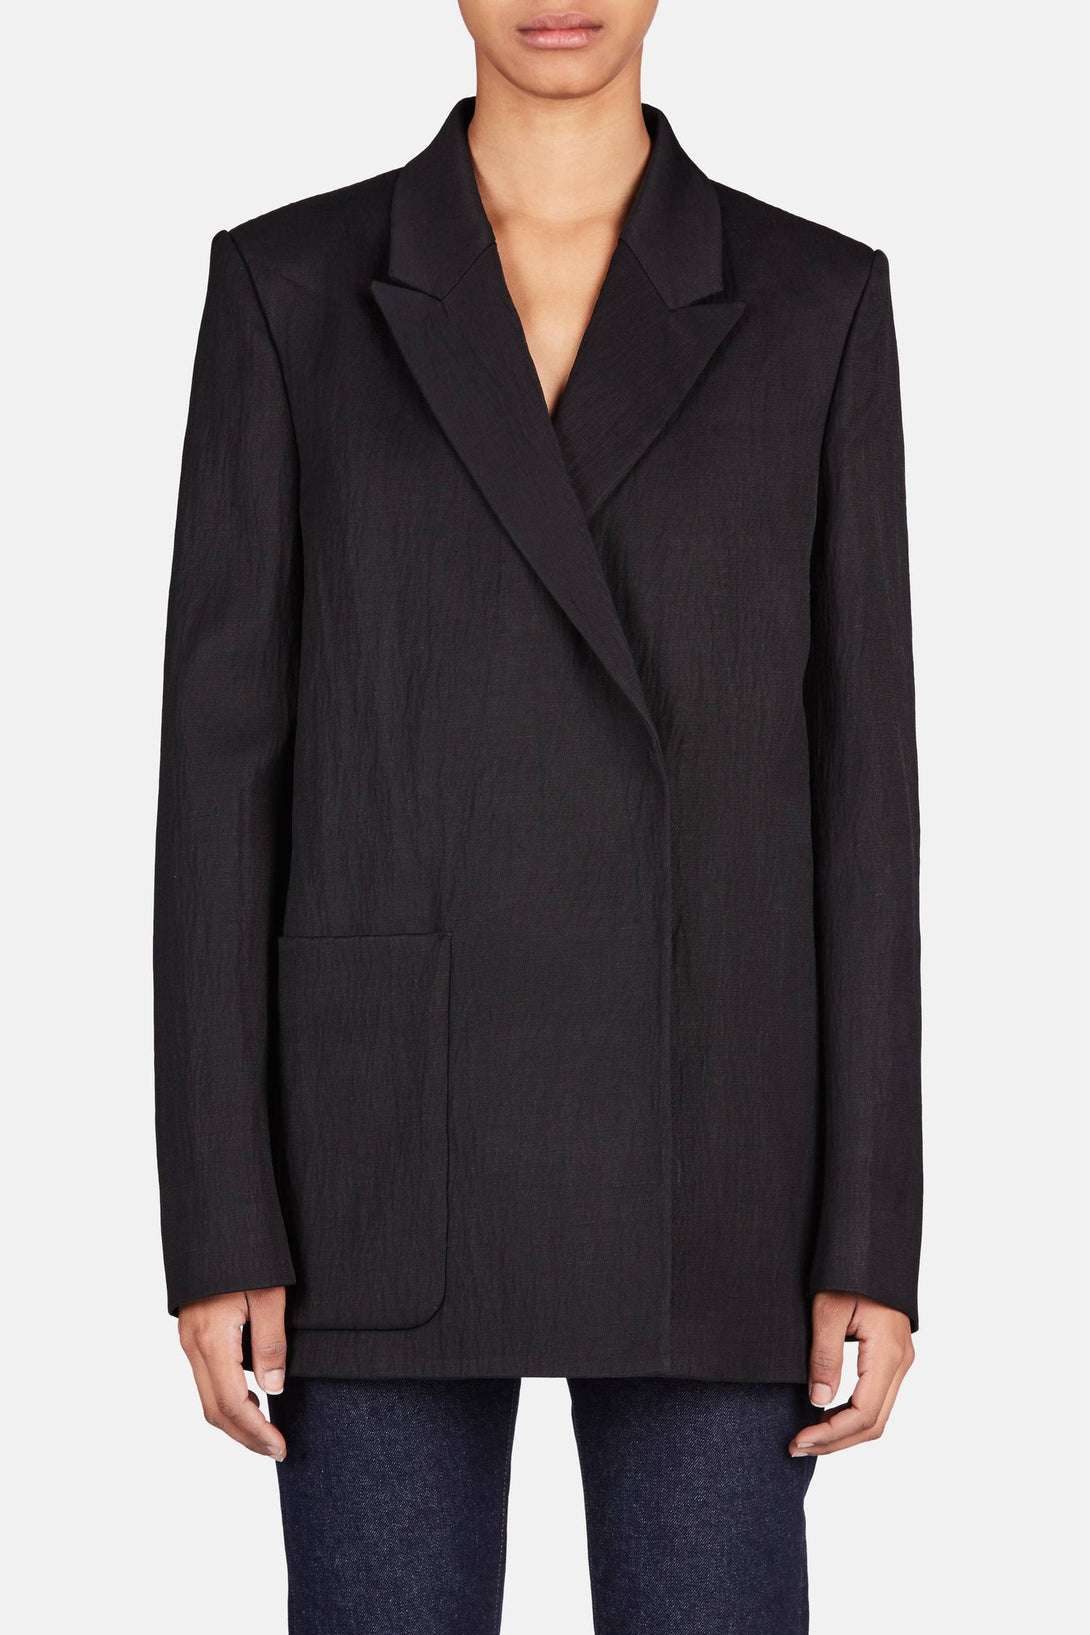 Deana Crinkle Jacket - Black